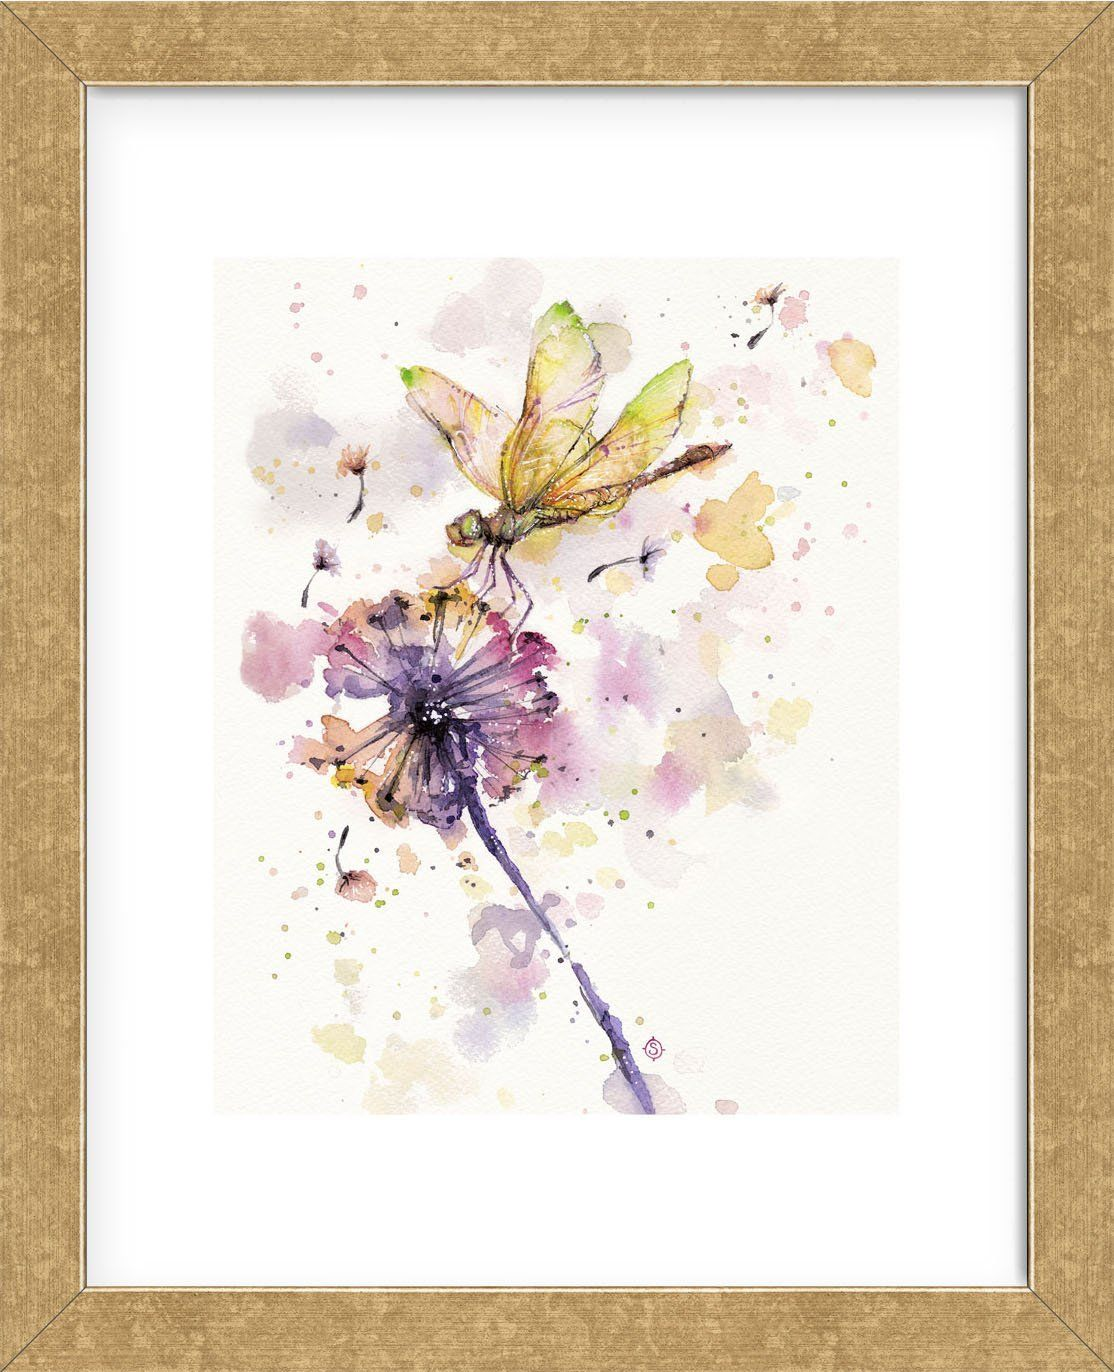 Dragonfly Dandelion Framed Dandelion Art Dragonfly Painting